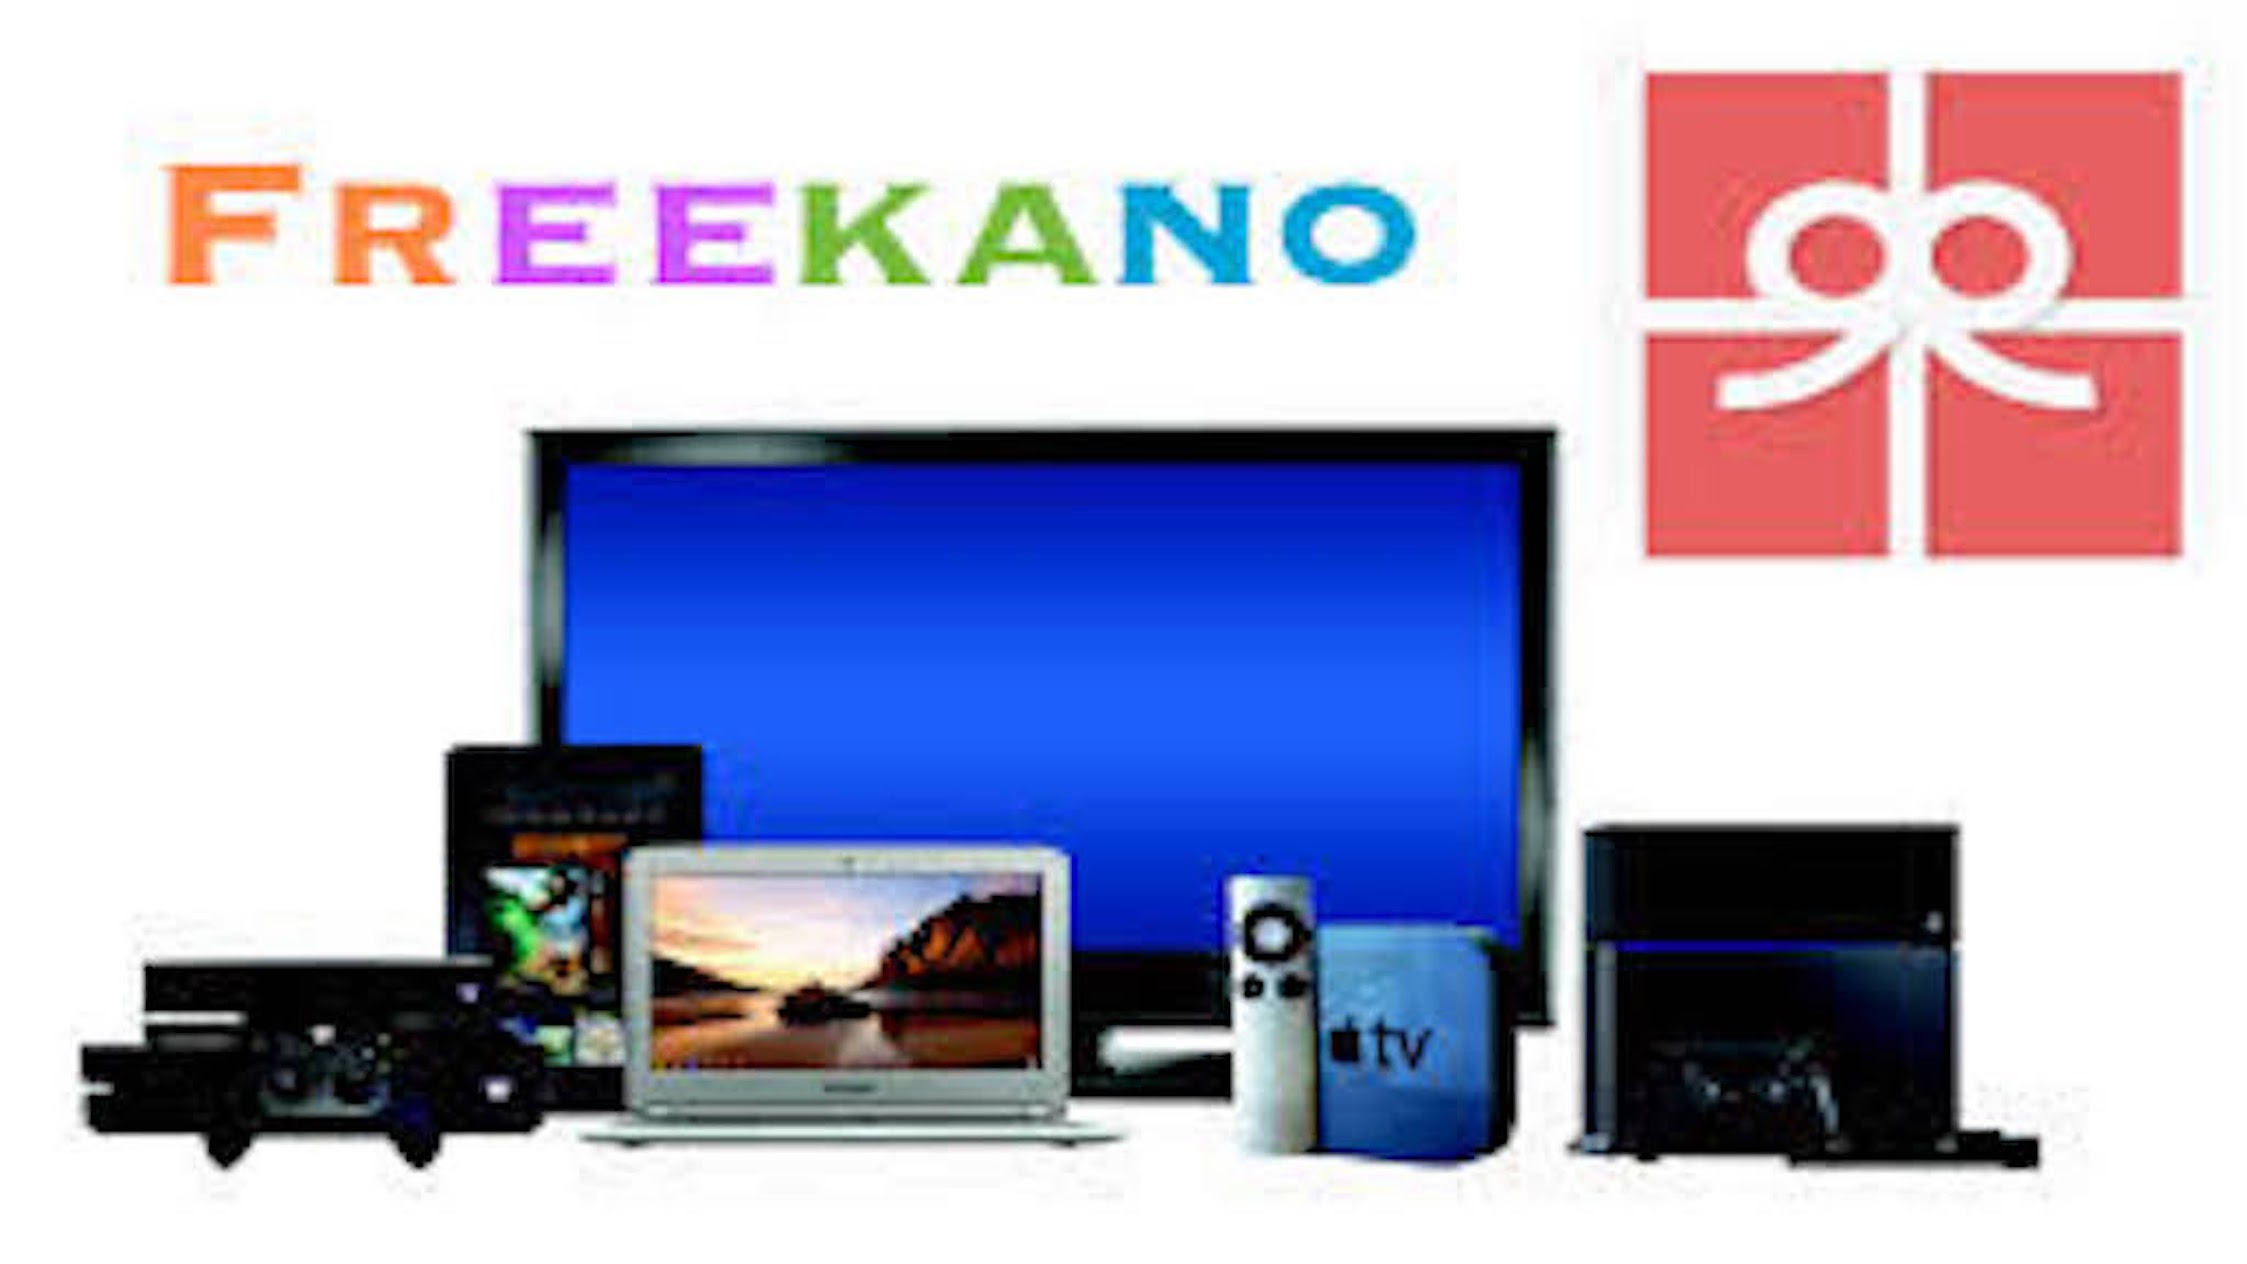 Freekano Gifts Prizes